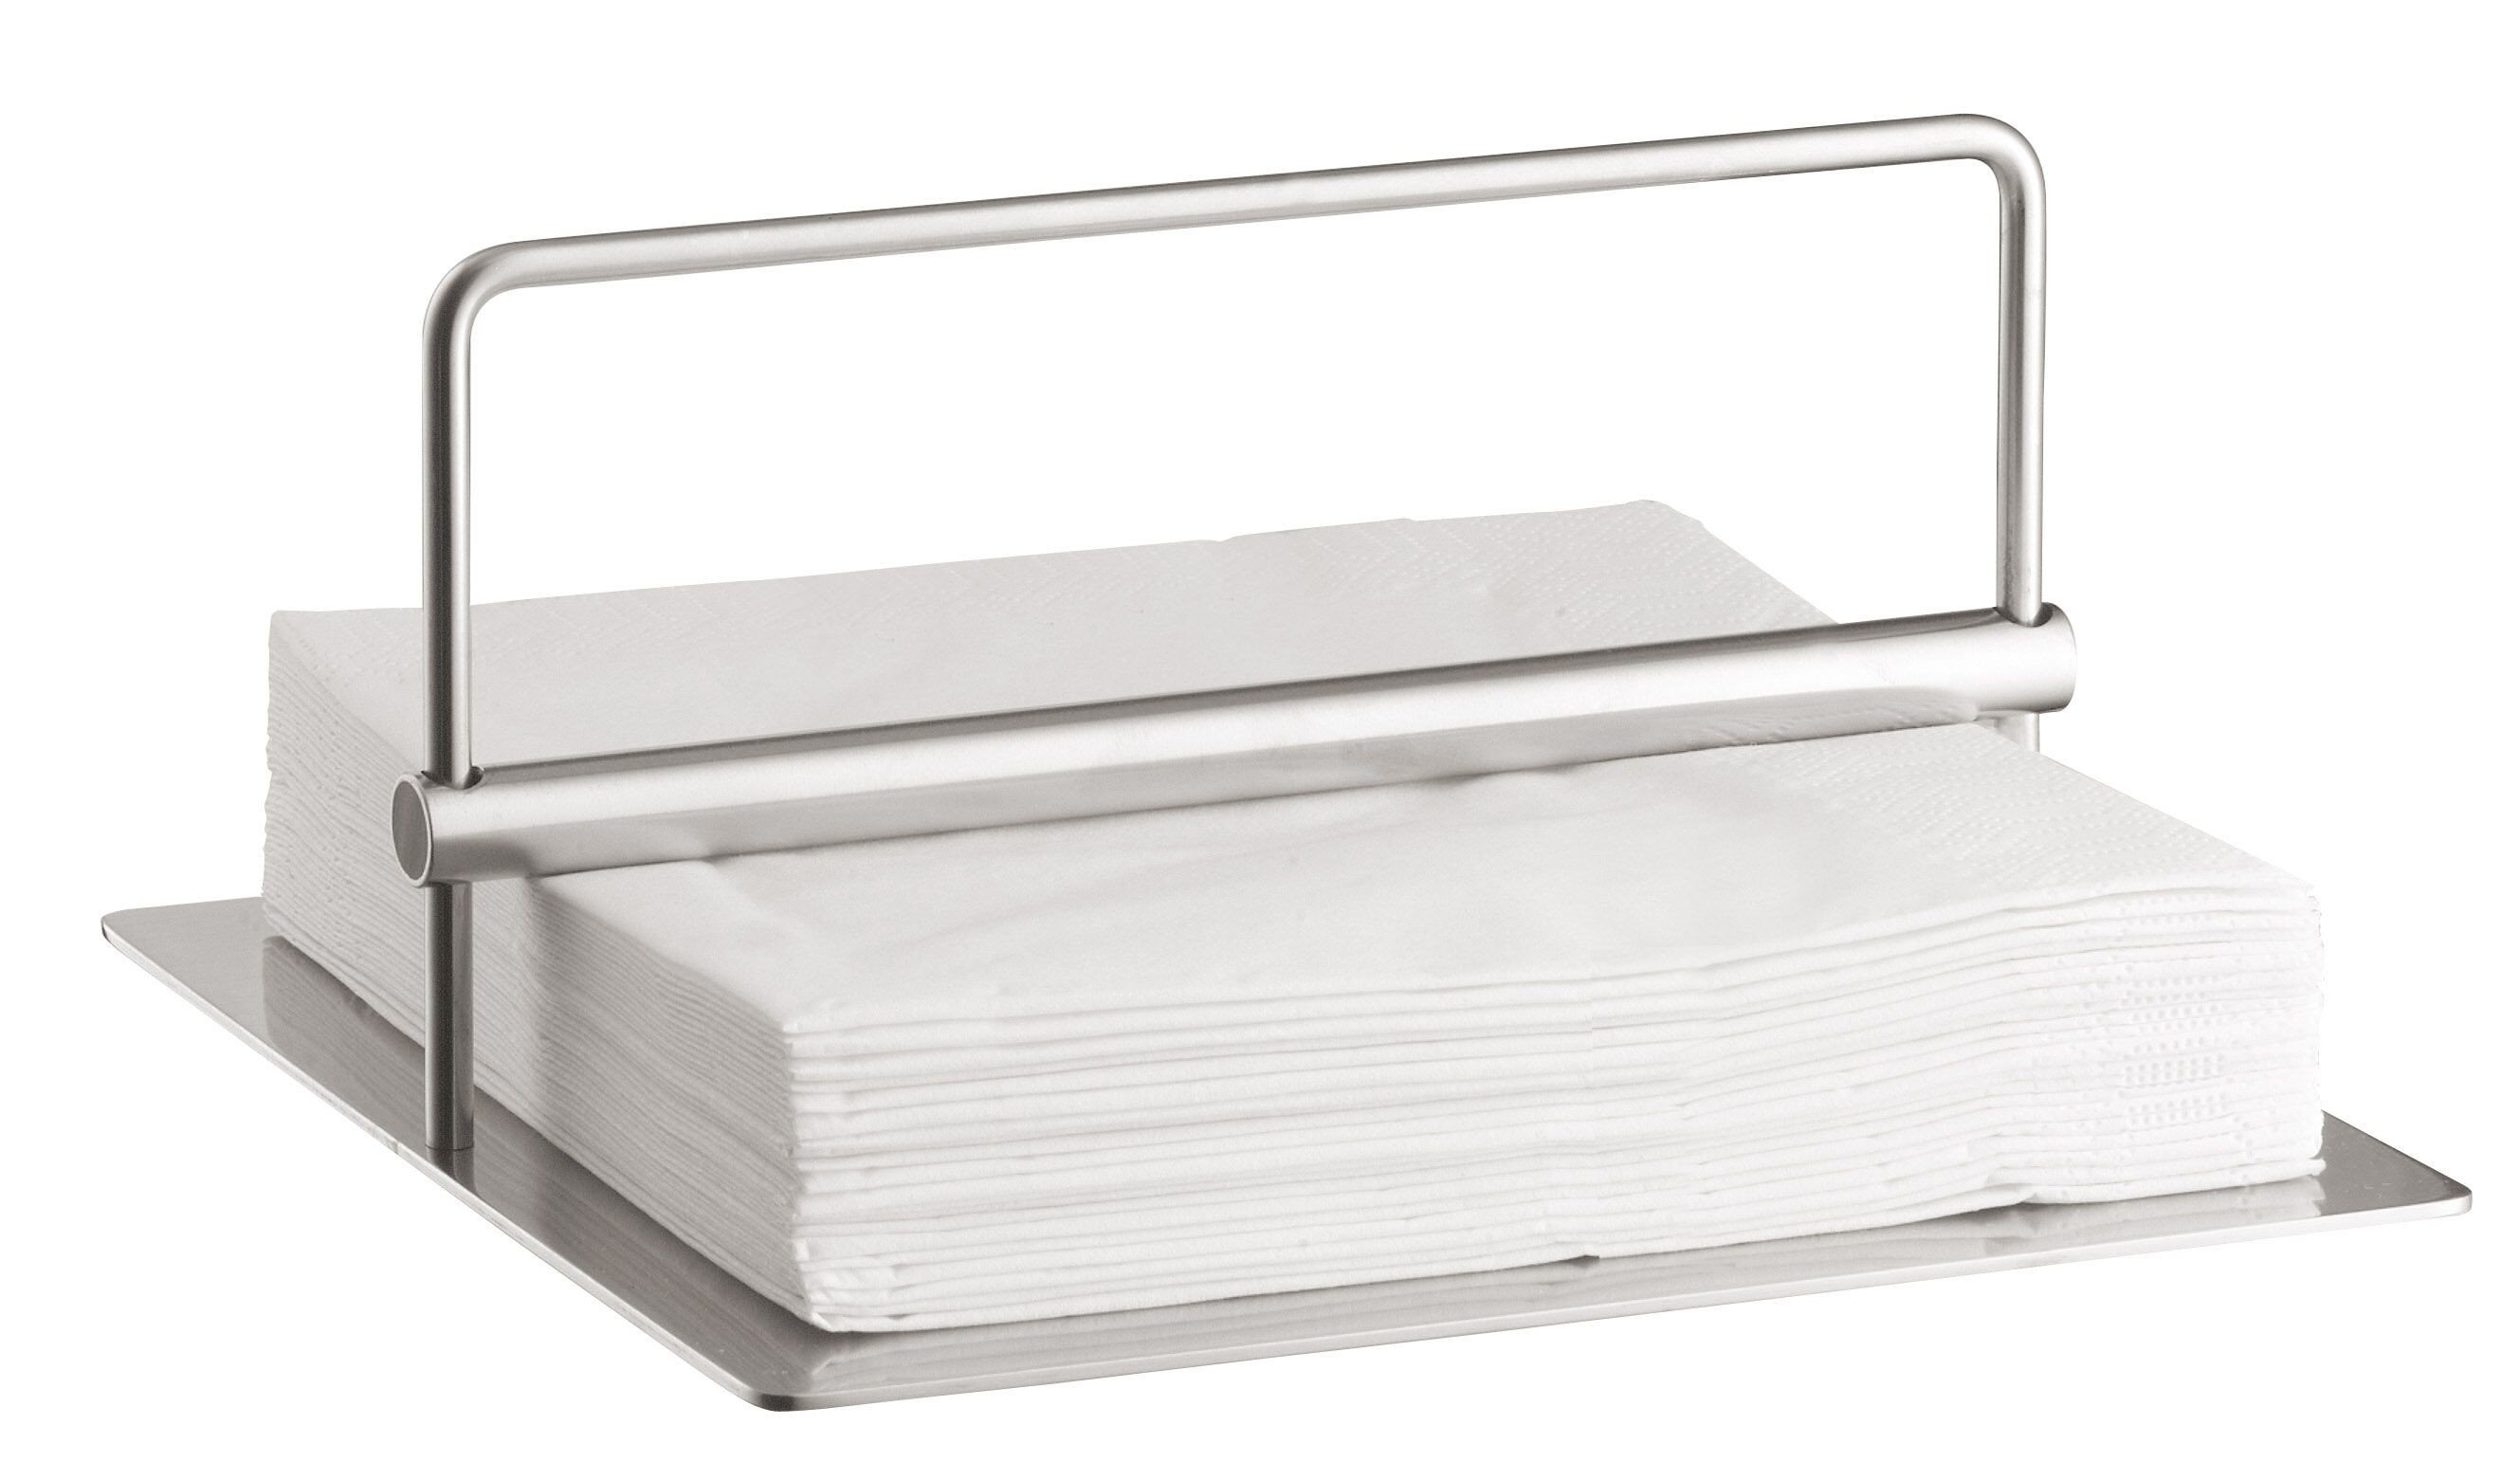 Original Napkin Holder Classic by P. Holmblad for Stelton